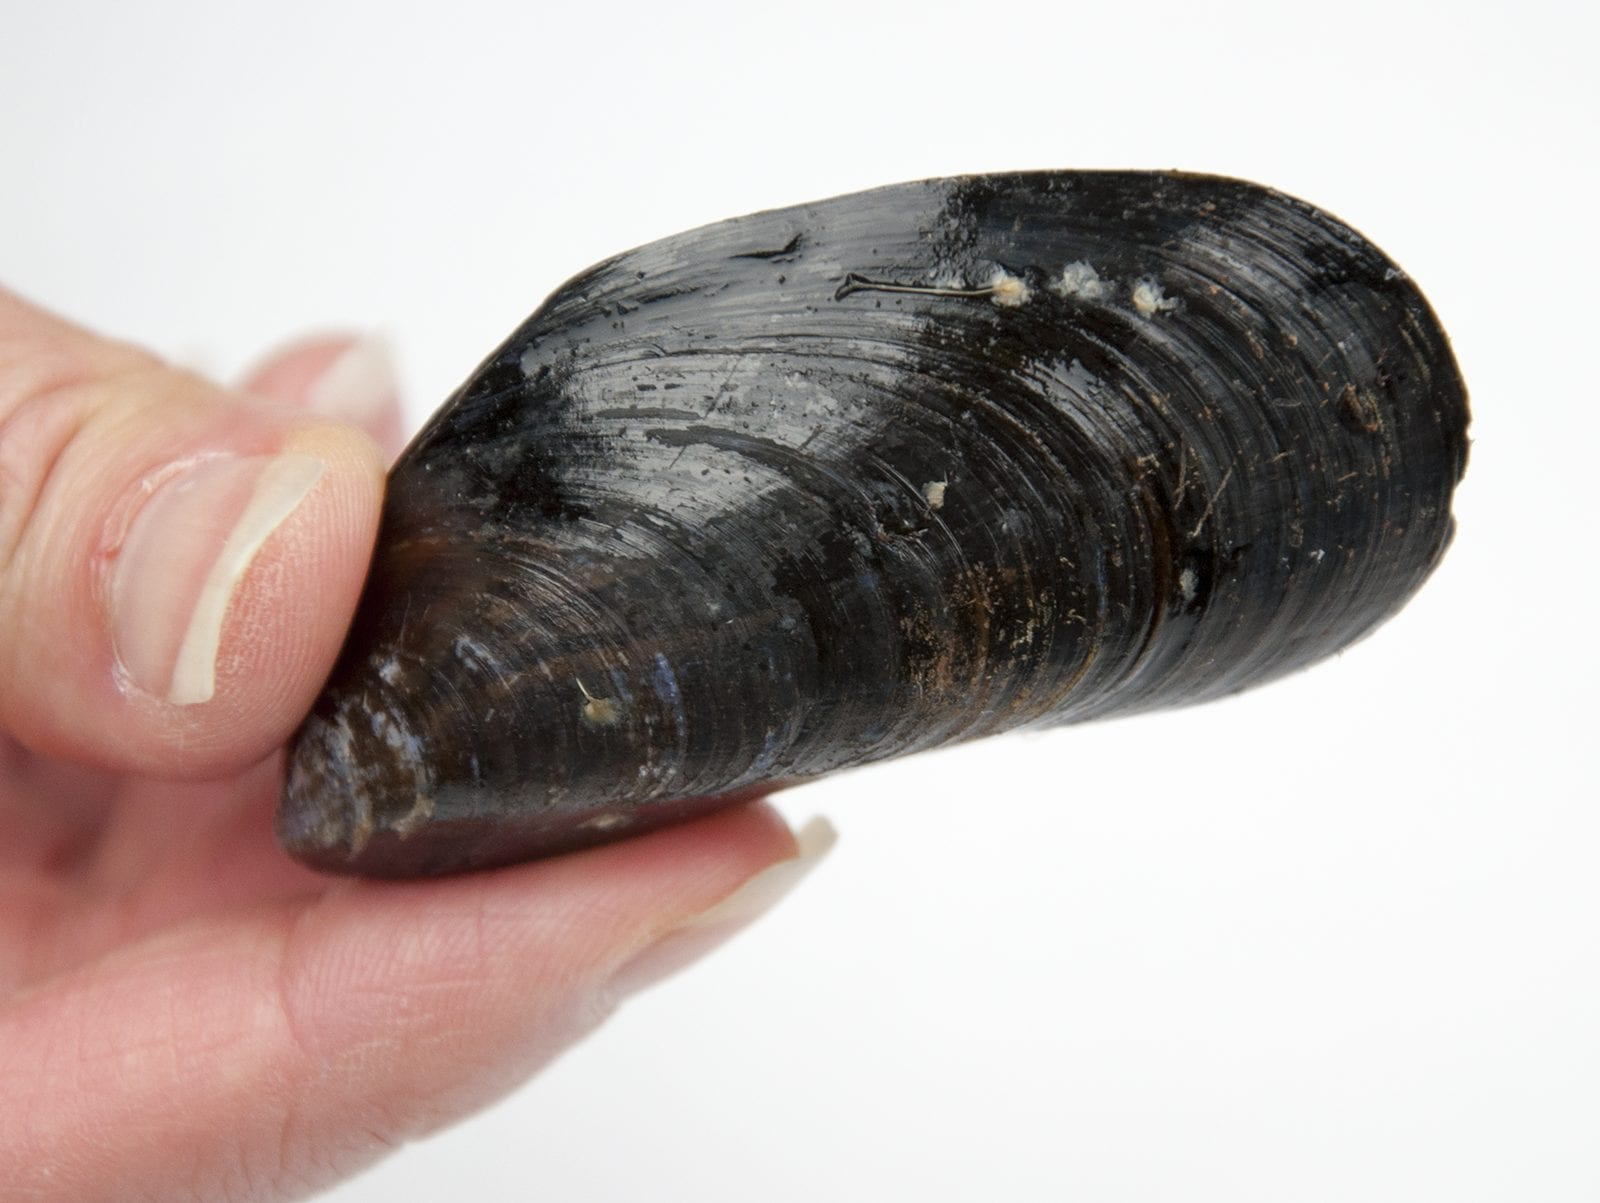 How to prepare a mussel. Make wonderful seafood recipes safely. Clean, debeard and sift out your dead mussels before cooking. | https://theyumyumclub.com